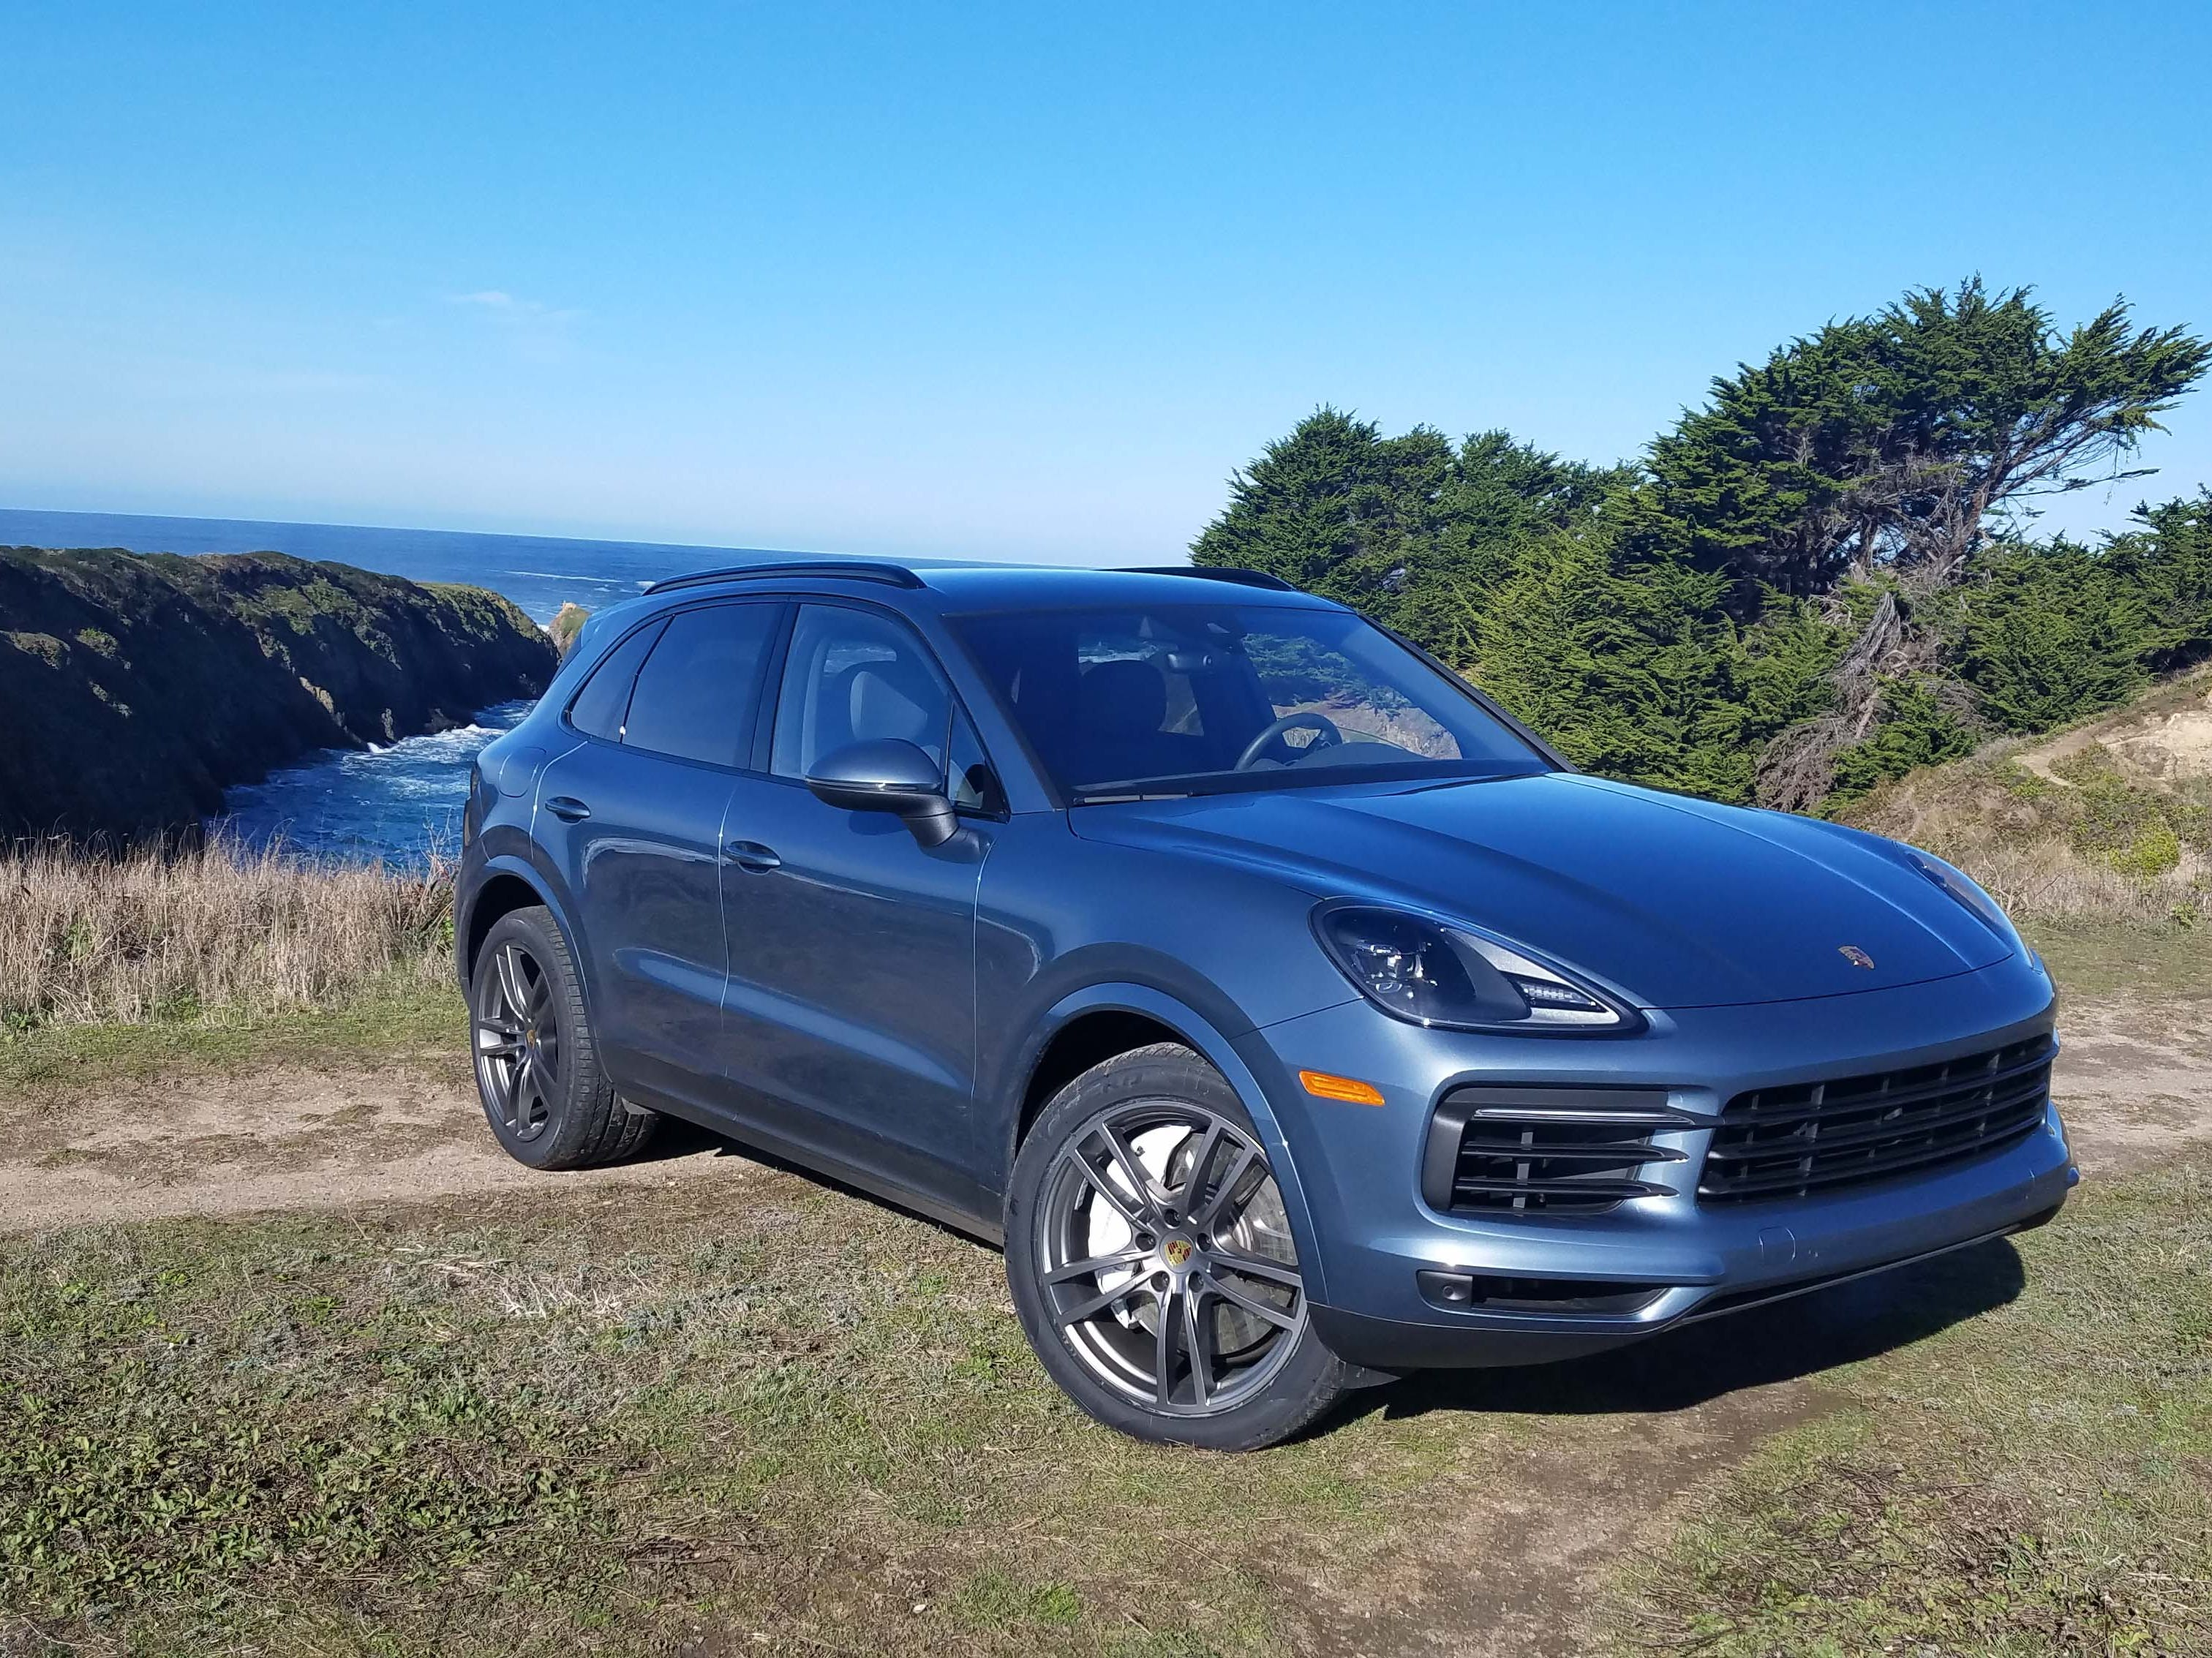 All new for its third generation, the $66K 2019 Porsche Cayenne sheds 120 pounds, gains 35 horsepower, and sprints 0-60 mph 1.6 seconds quicker than the Gen 2.